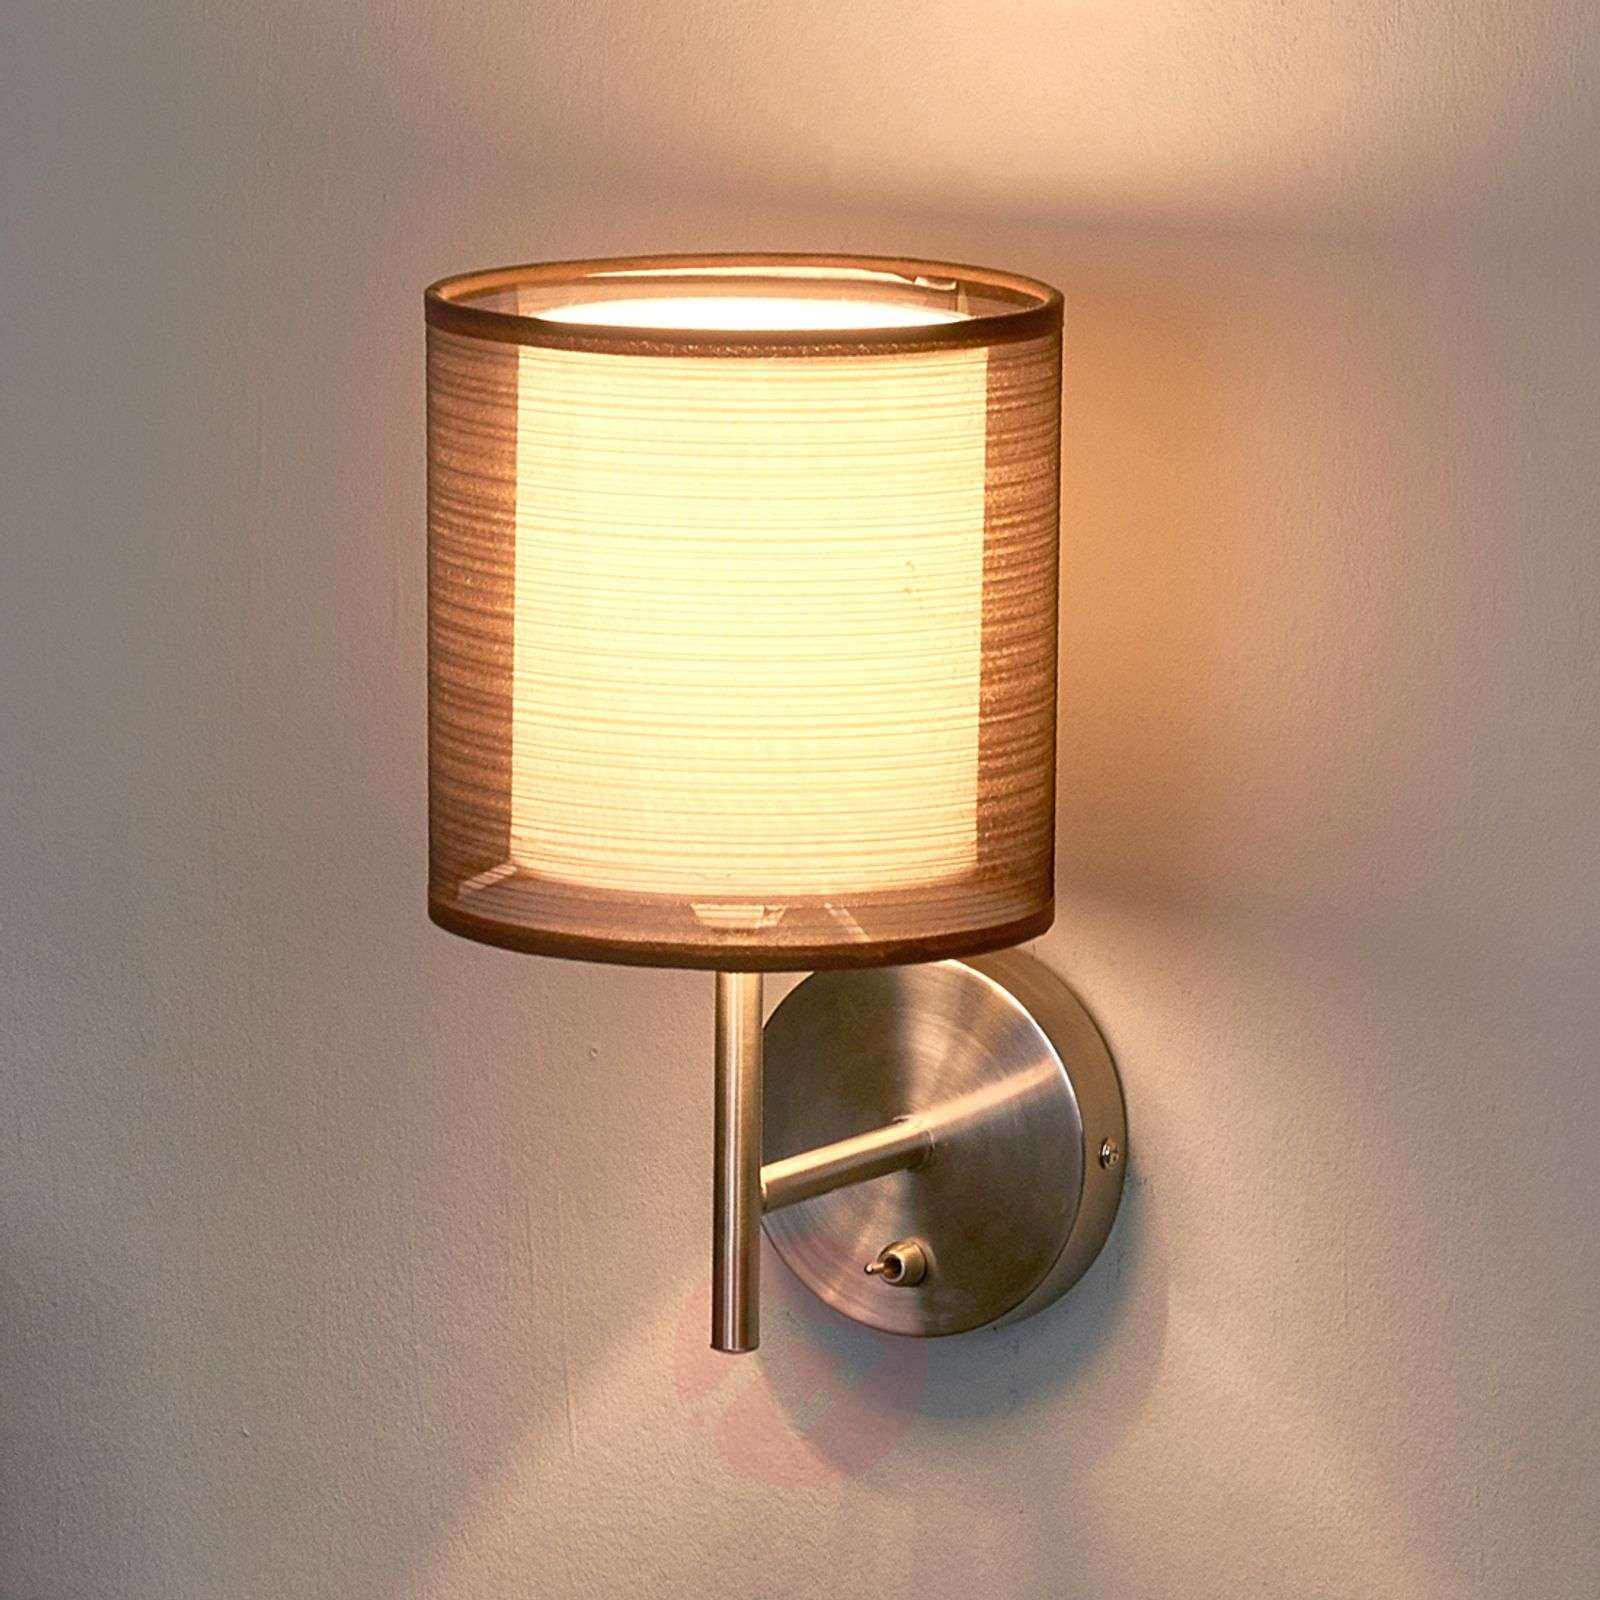 Nica wall lamp with fabric shade in brown-4018016-02